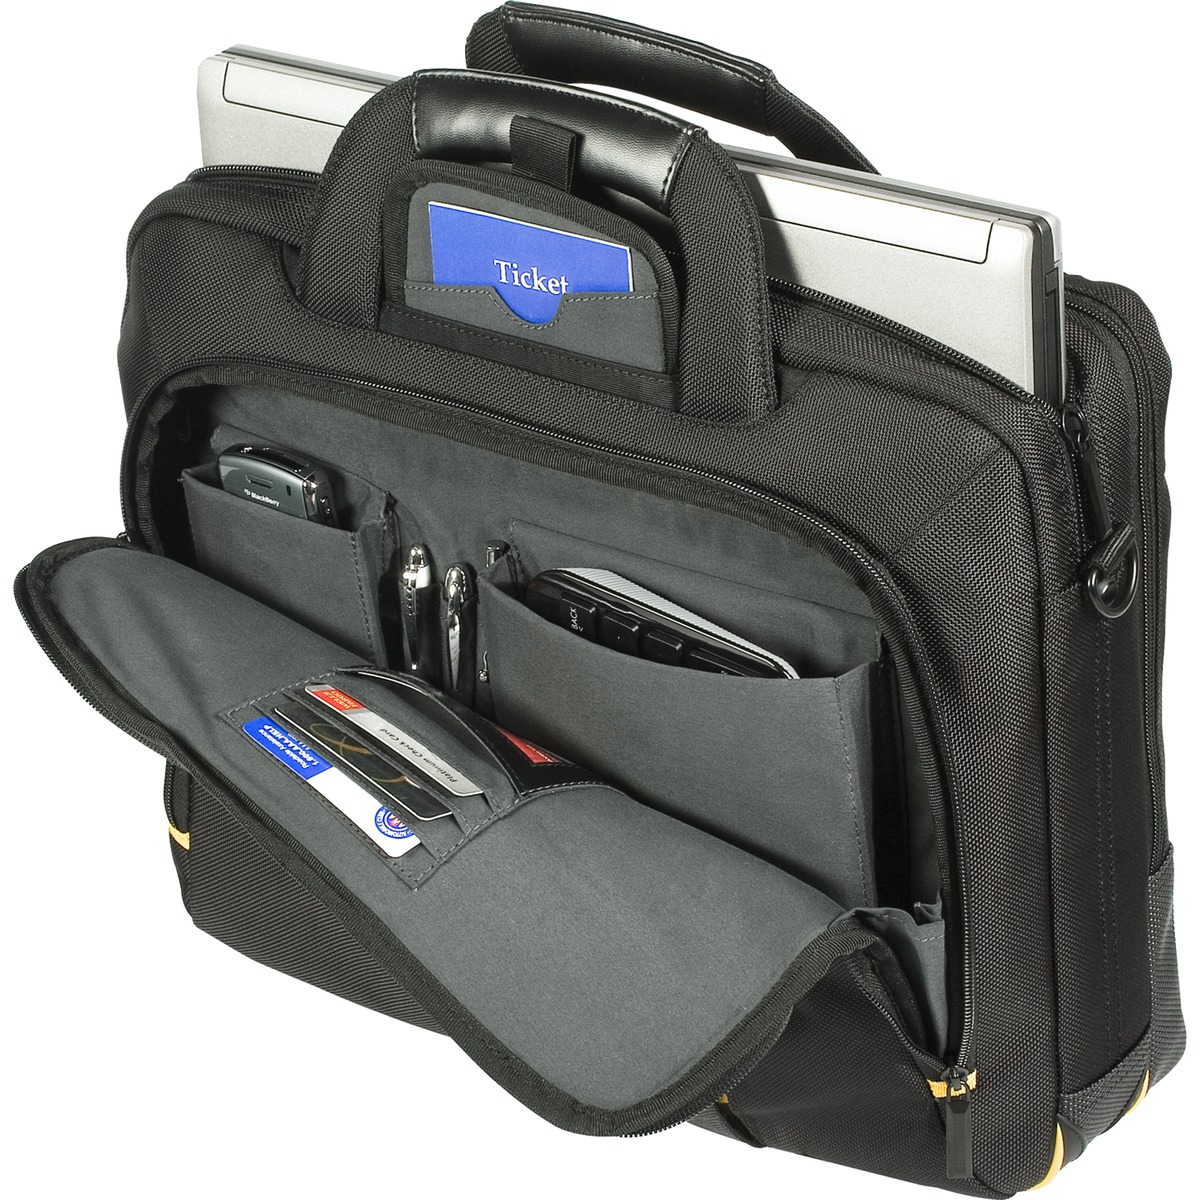 Fits up to 15.6 for XPS Latitude Vostro Precision Inspiron 10 11 12 12.1 13 14 15 460-11499 39.6 cm Genuine Original DELL Targus Meridian II Toploader 15.6 Notebook Laptop Case BAG Dell P//N : H2R13 laptops